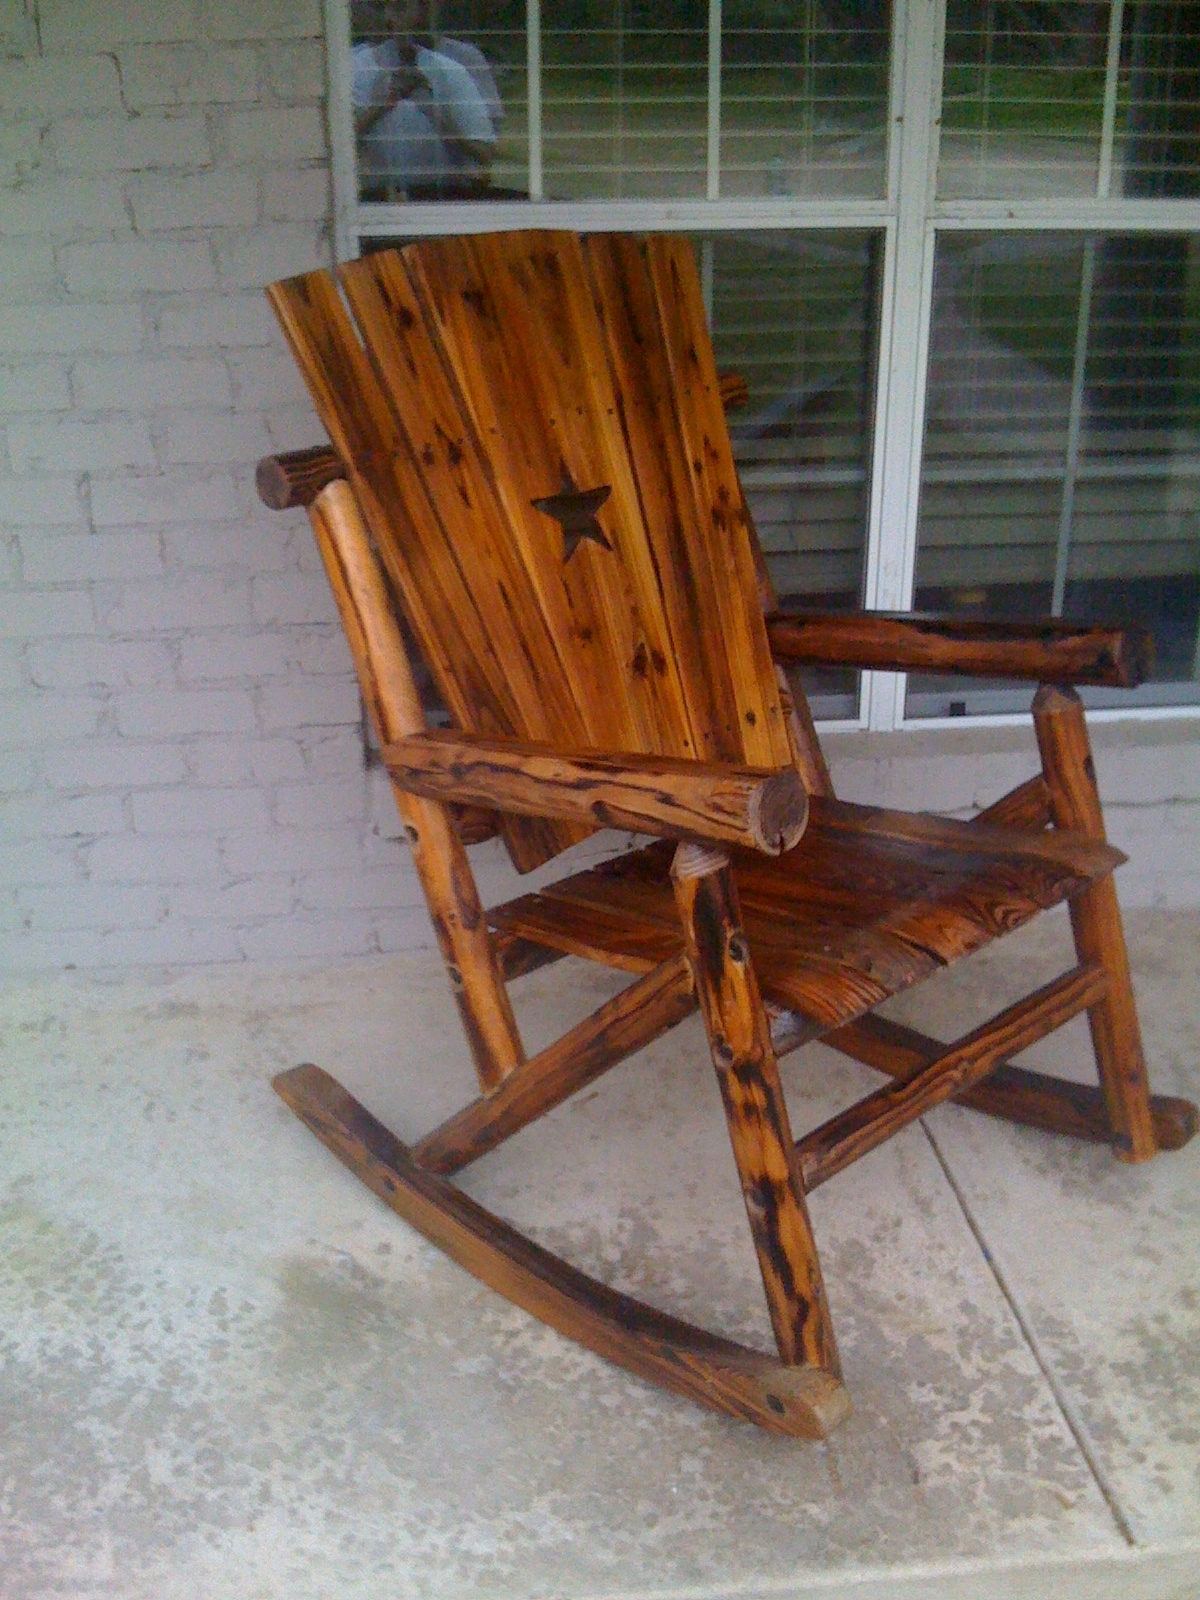 Patio Wooden Rocking Chairs Regarding Preferred Outdoor Wooden Rocking Chairs Rustic : Pleasure Outdoor Wooden (View 8 of 15)